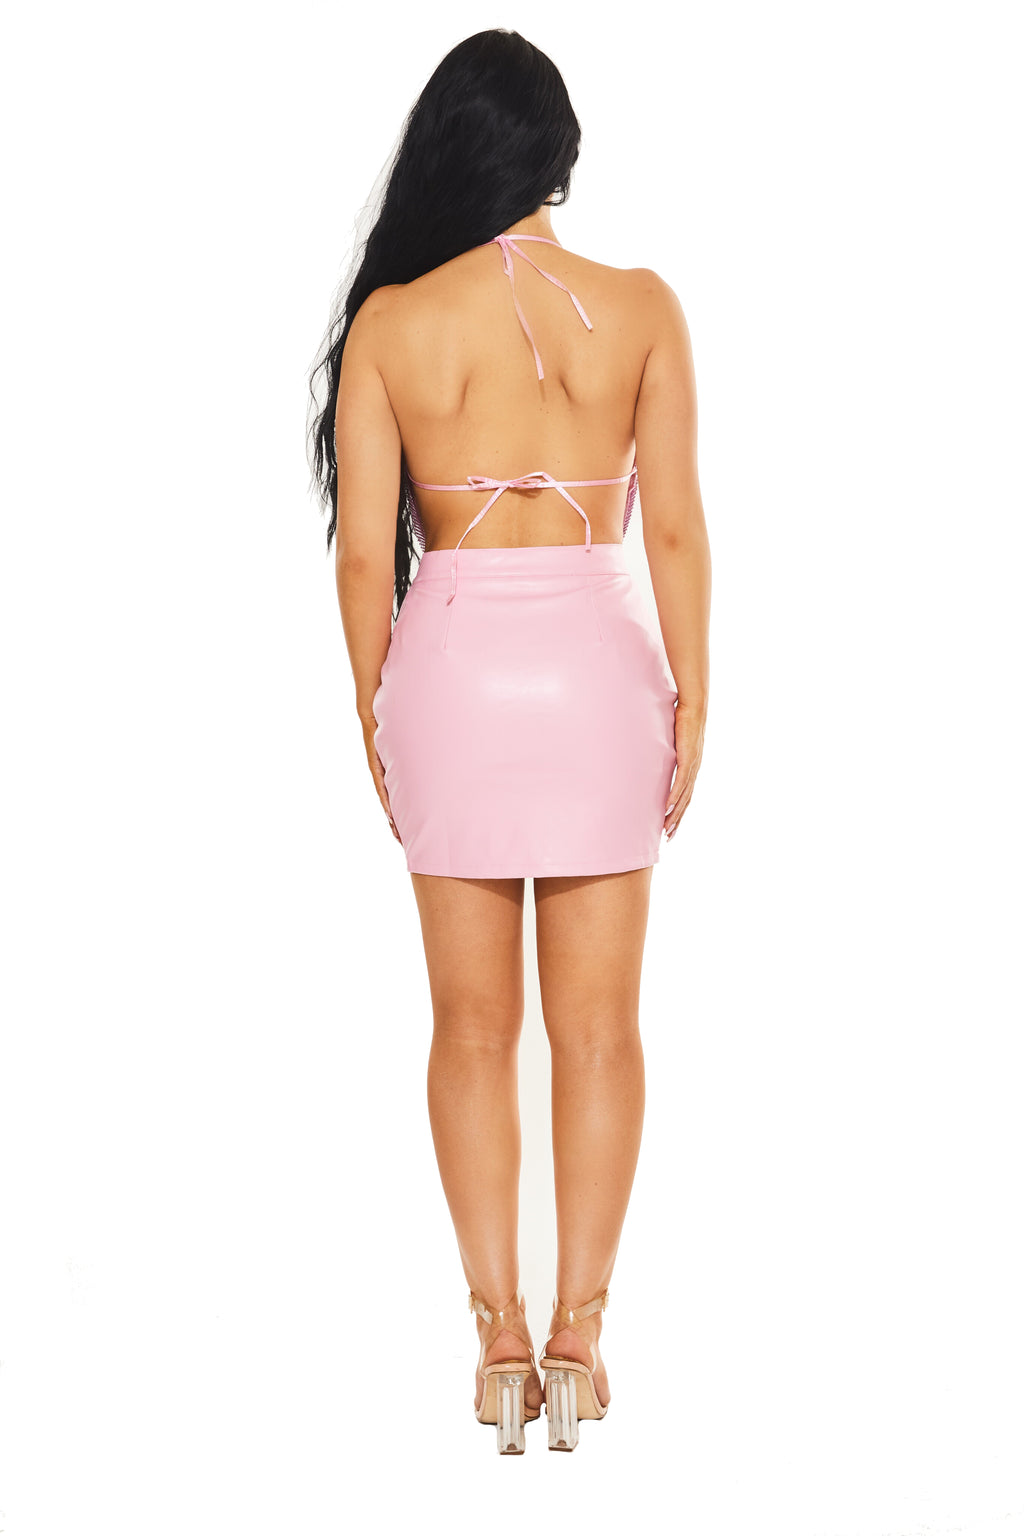 ALL EYES ON ME - Skirt - Pink - www.prettyboutique.com